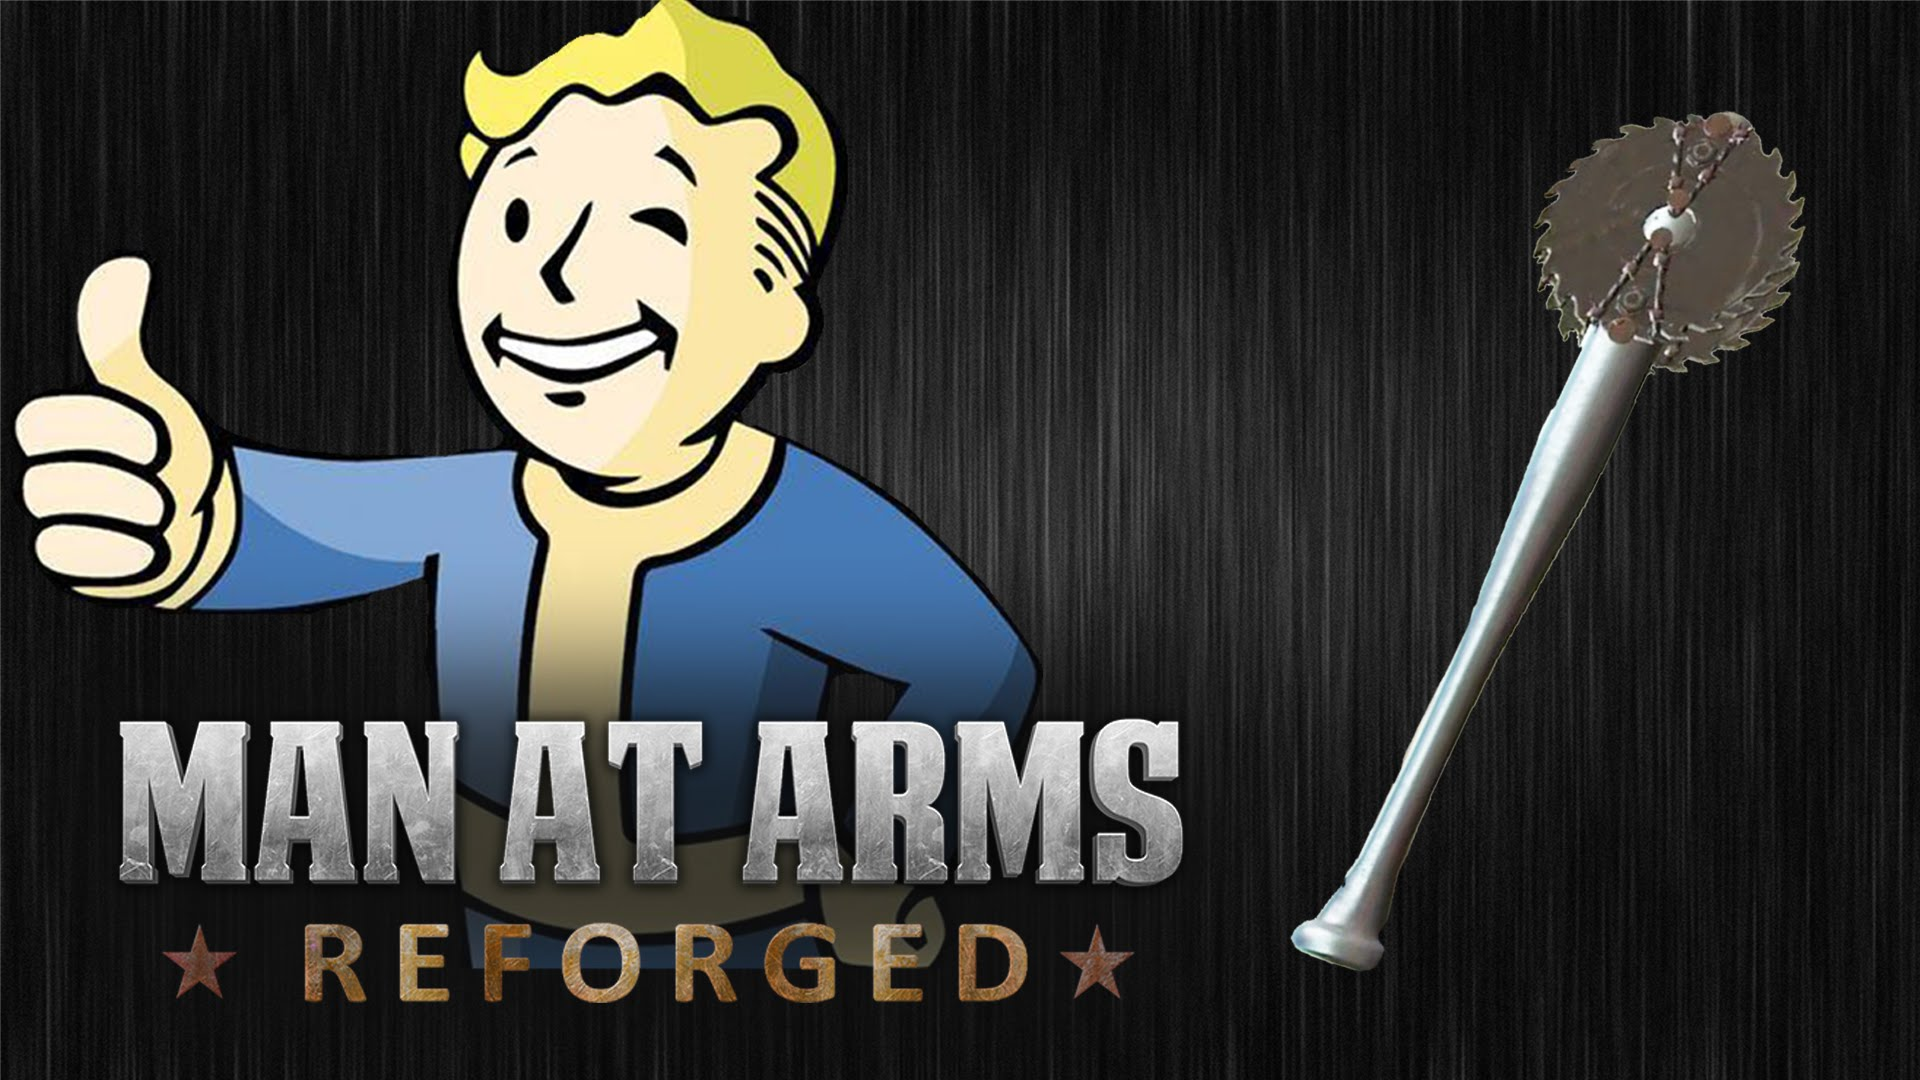 Man at Arms: Reforged Builds Real-Life Versions of Weapons From Fallout 4